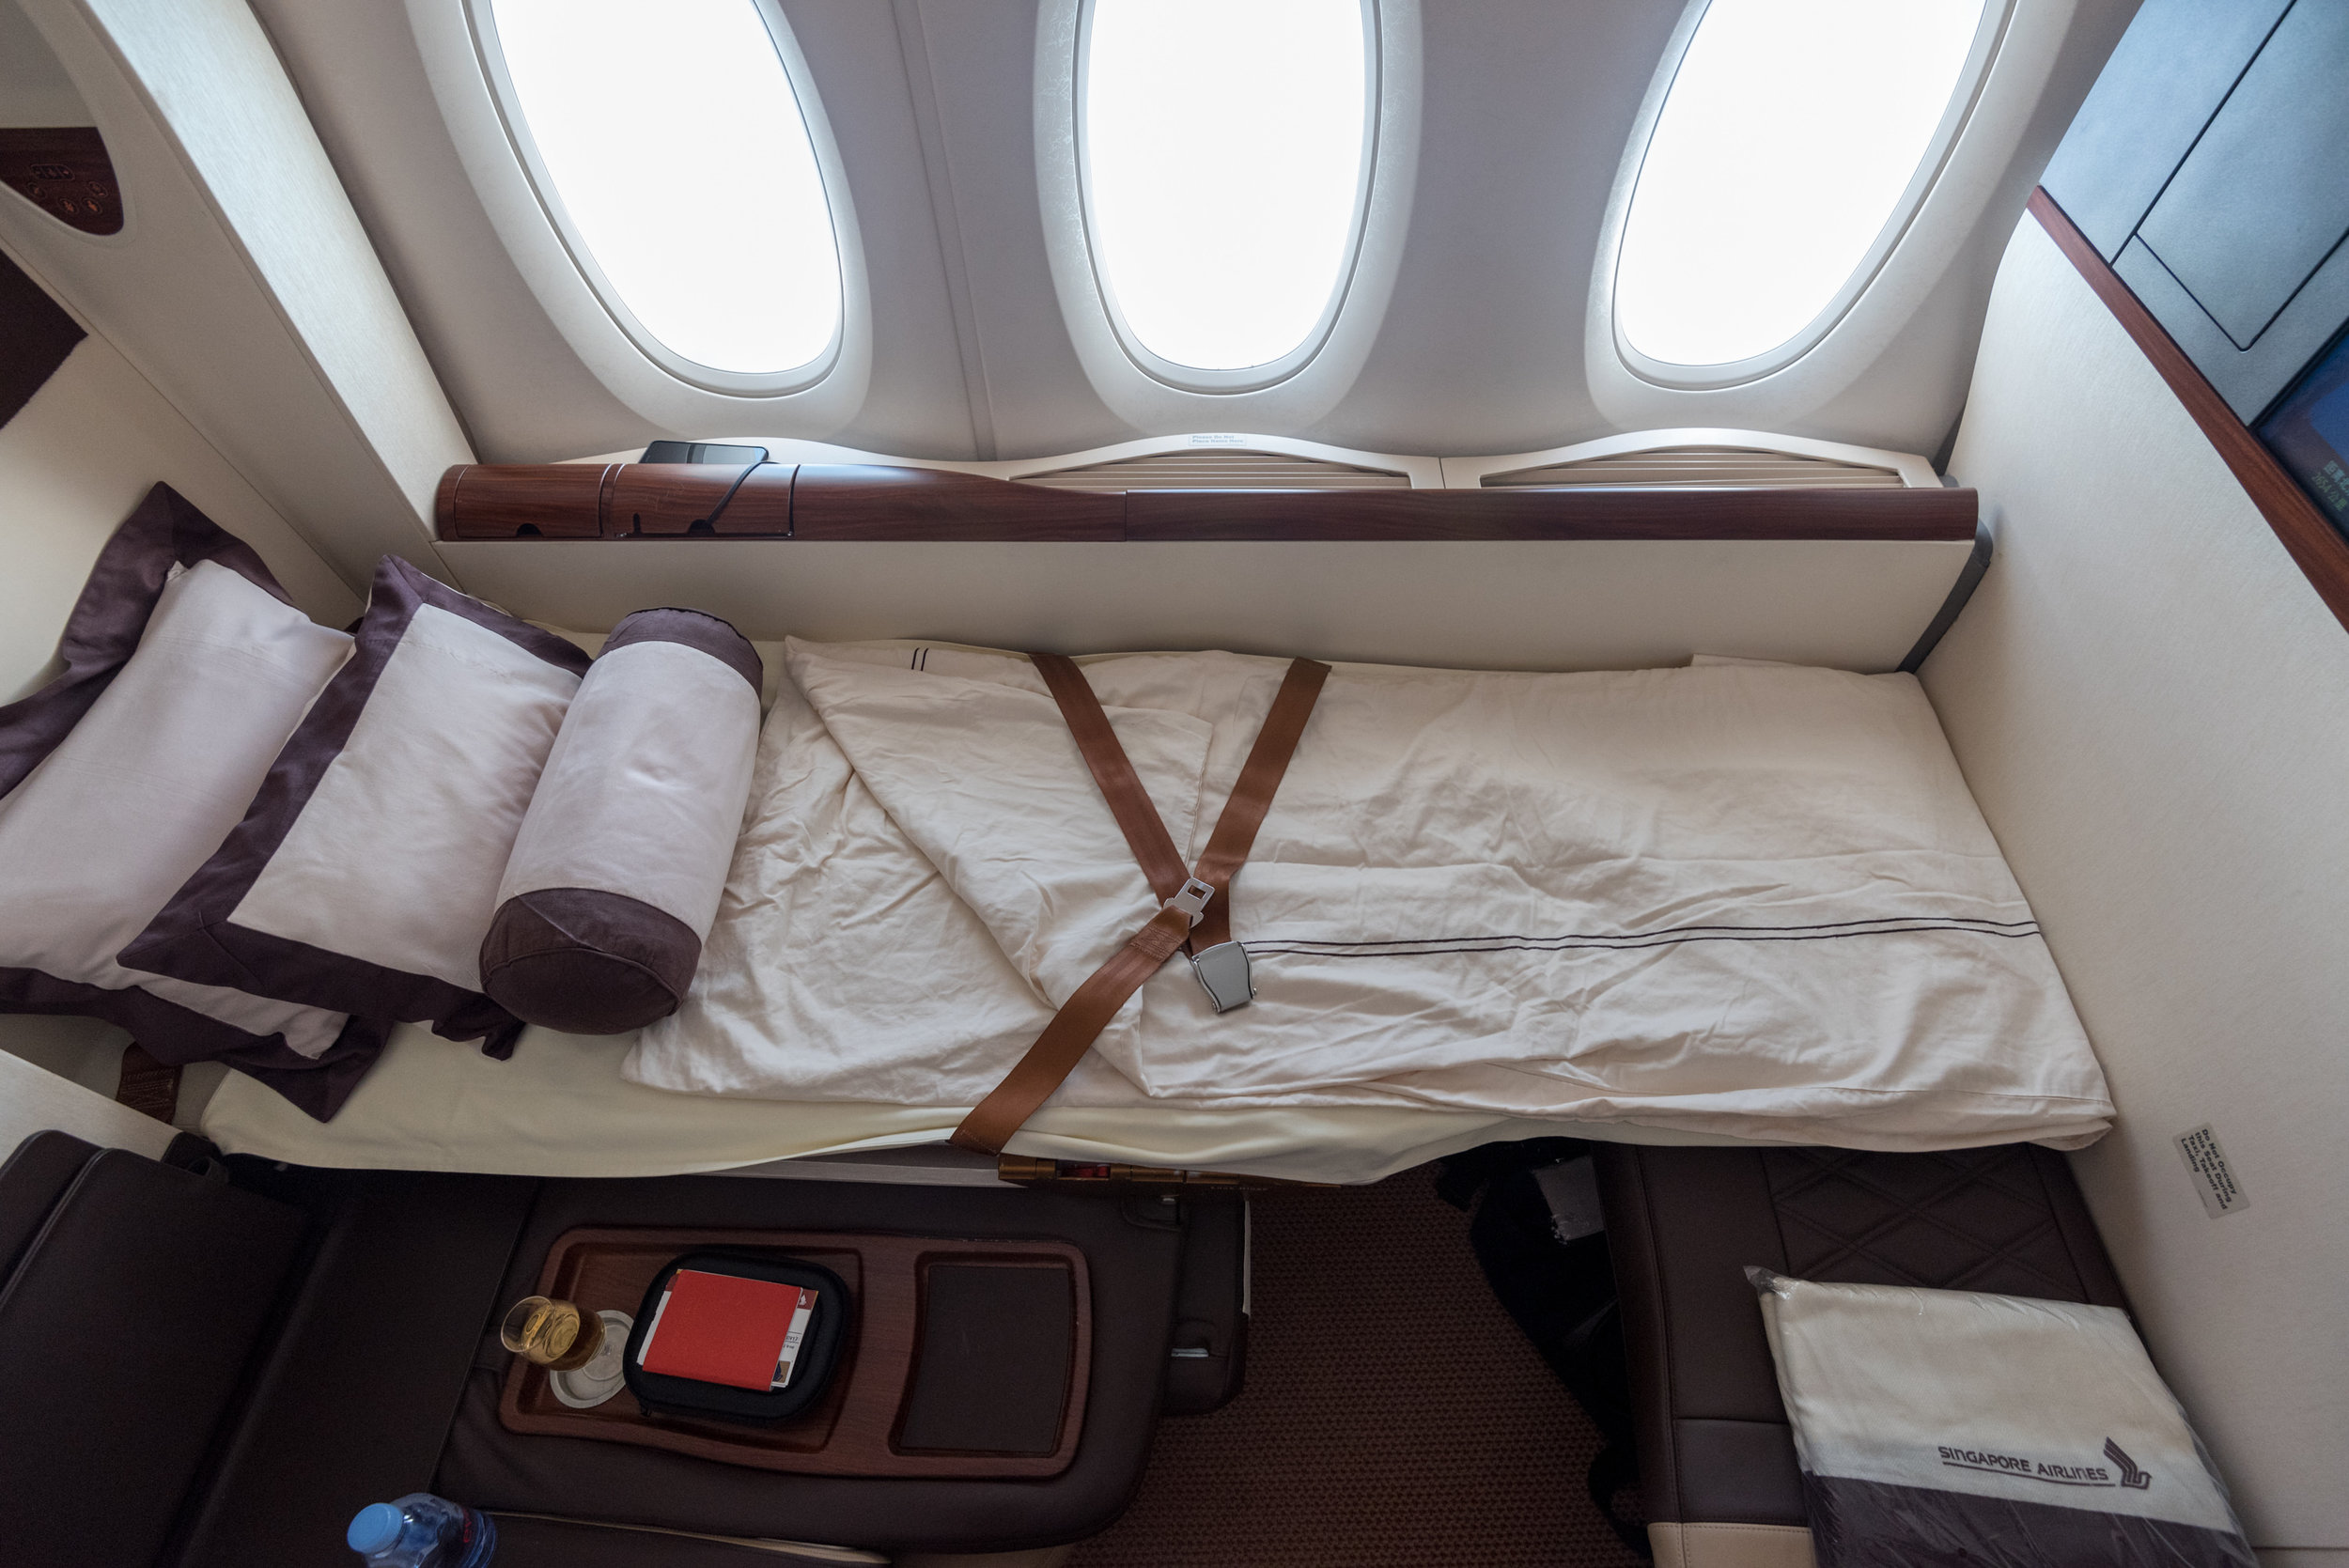 Bed in Suite 3A  Singapore Airlines Suites SQ802 A380-800 - SIN to PEK